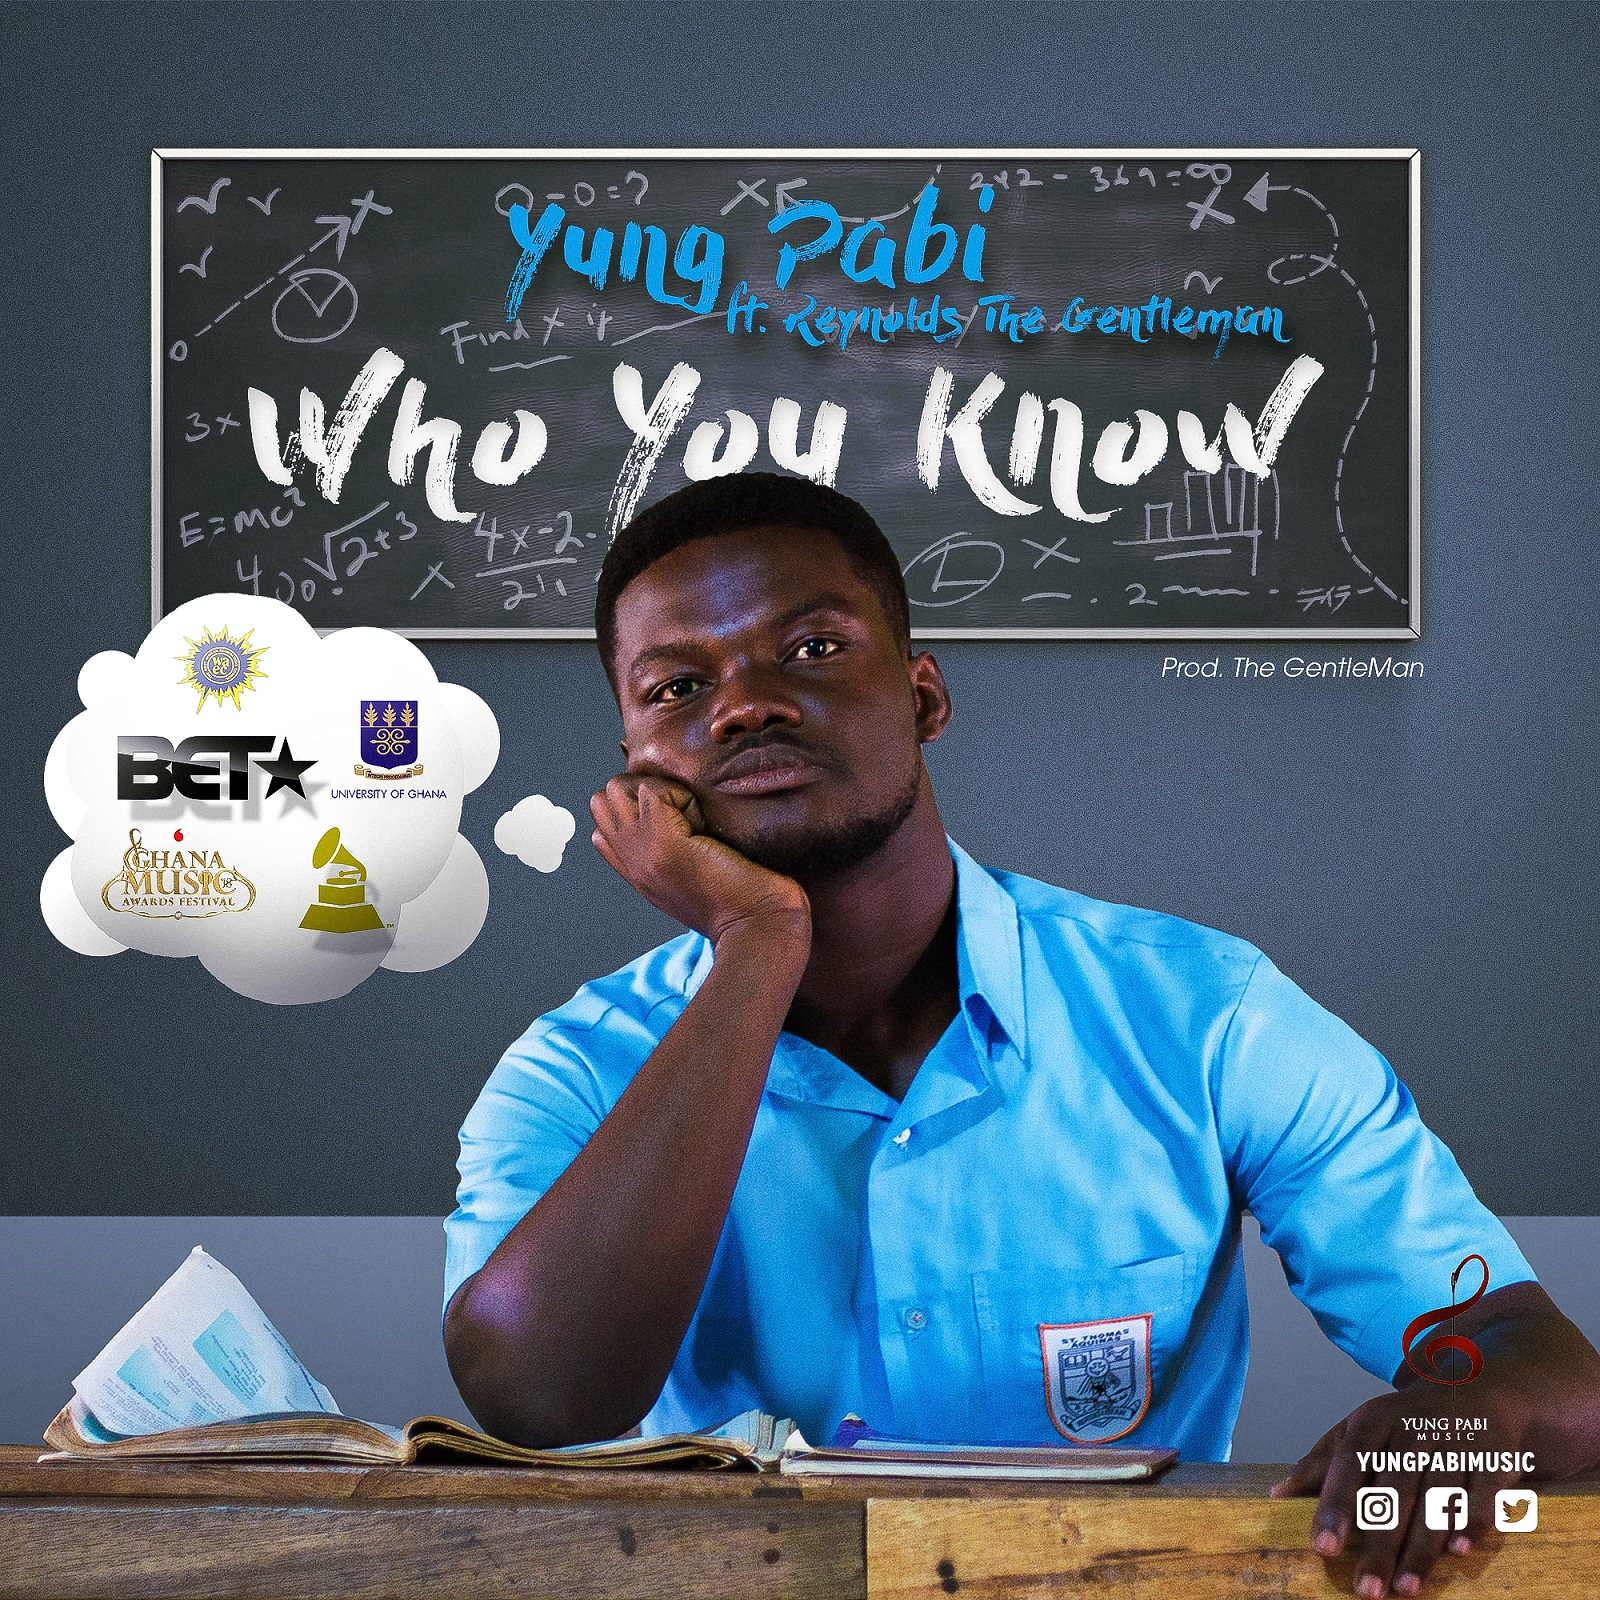 Who You Know by Yung Pabi